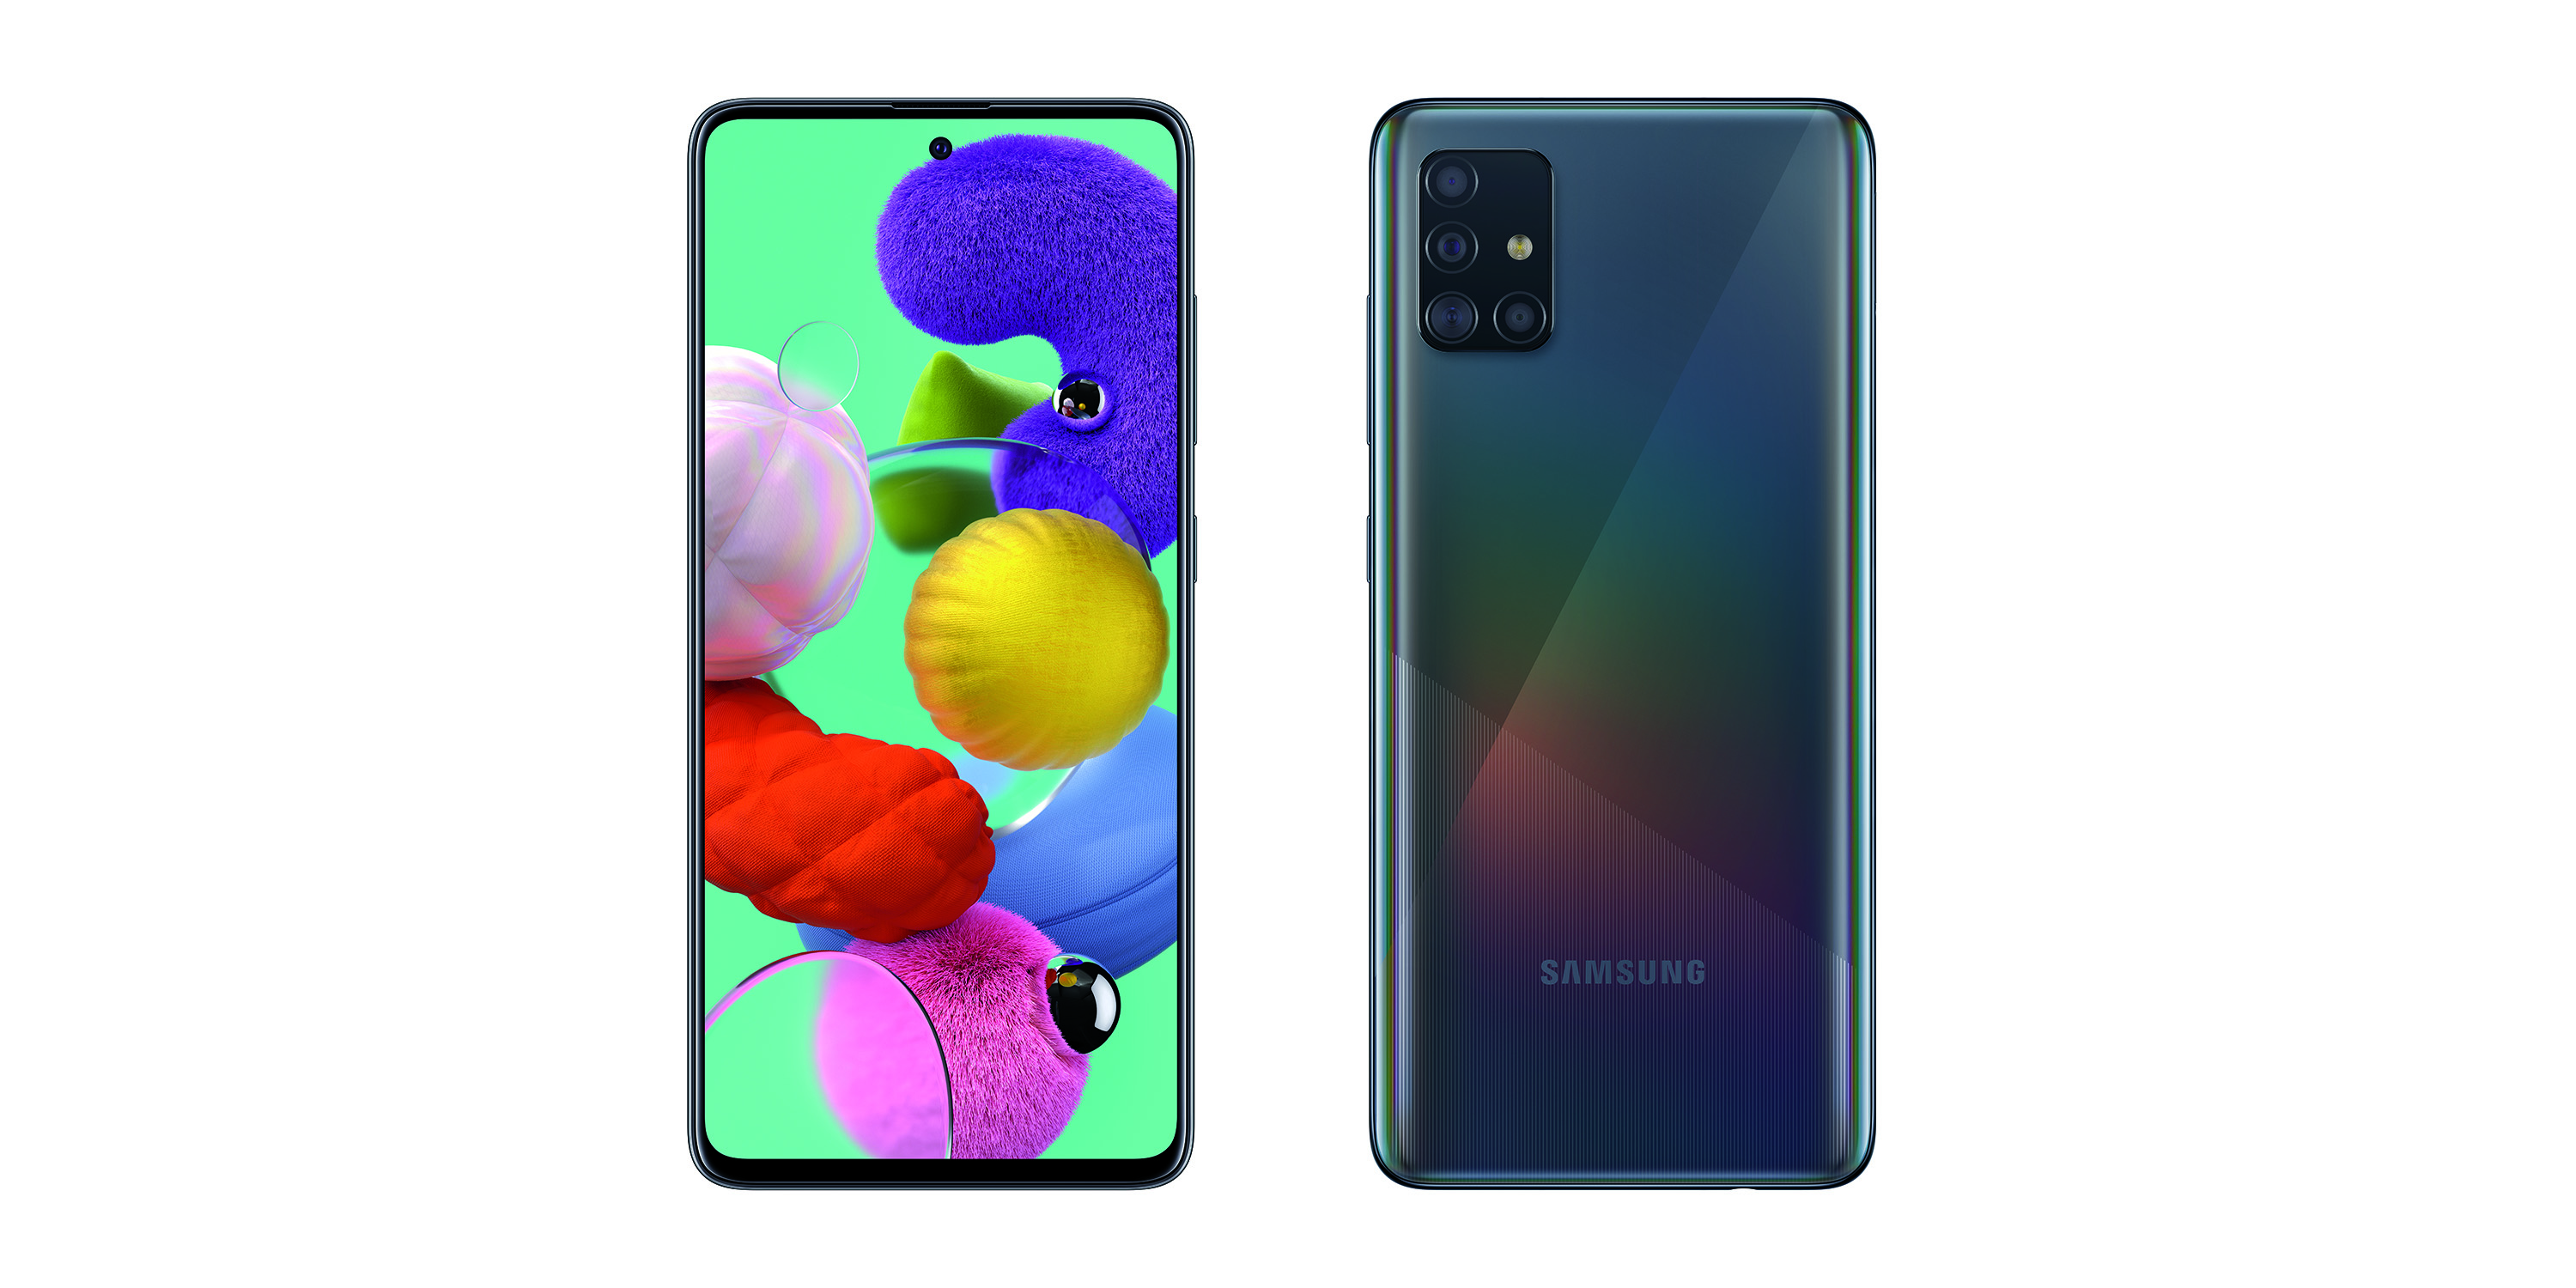 Samsung Galaxy A51 - affordable Android phones